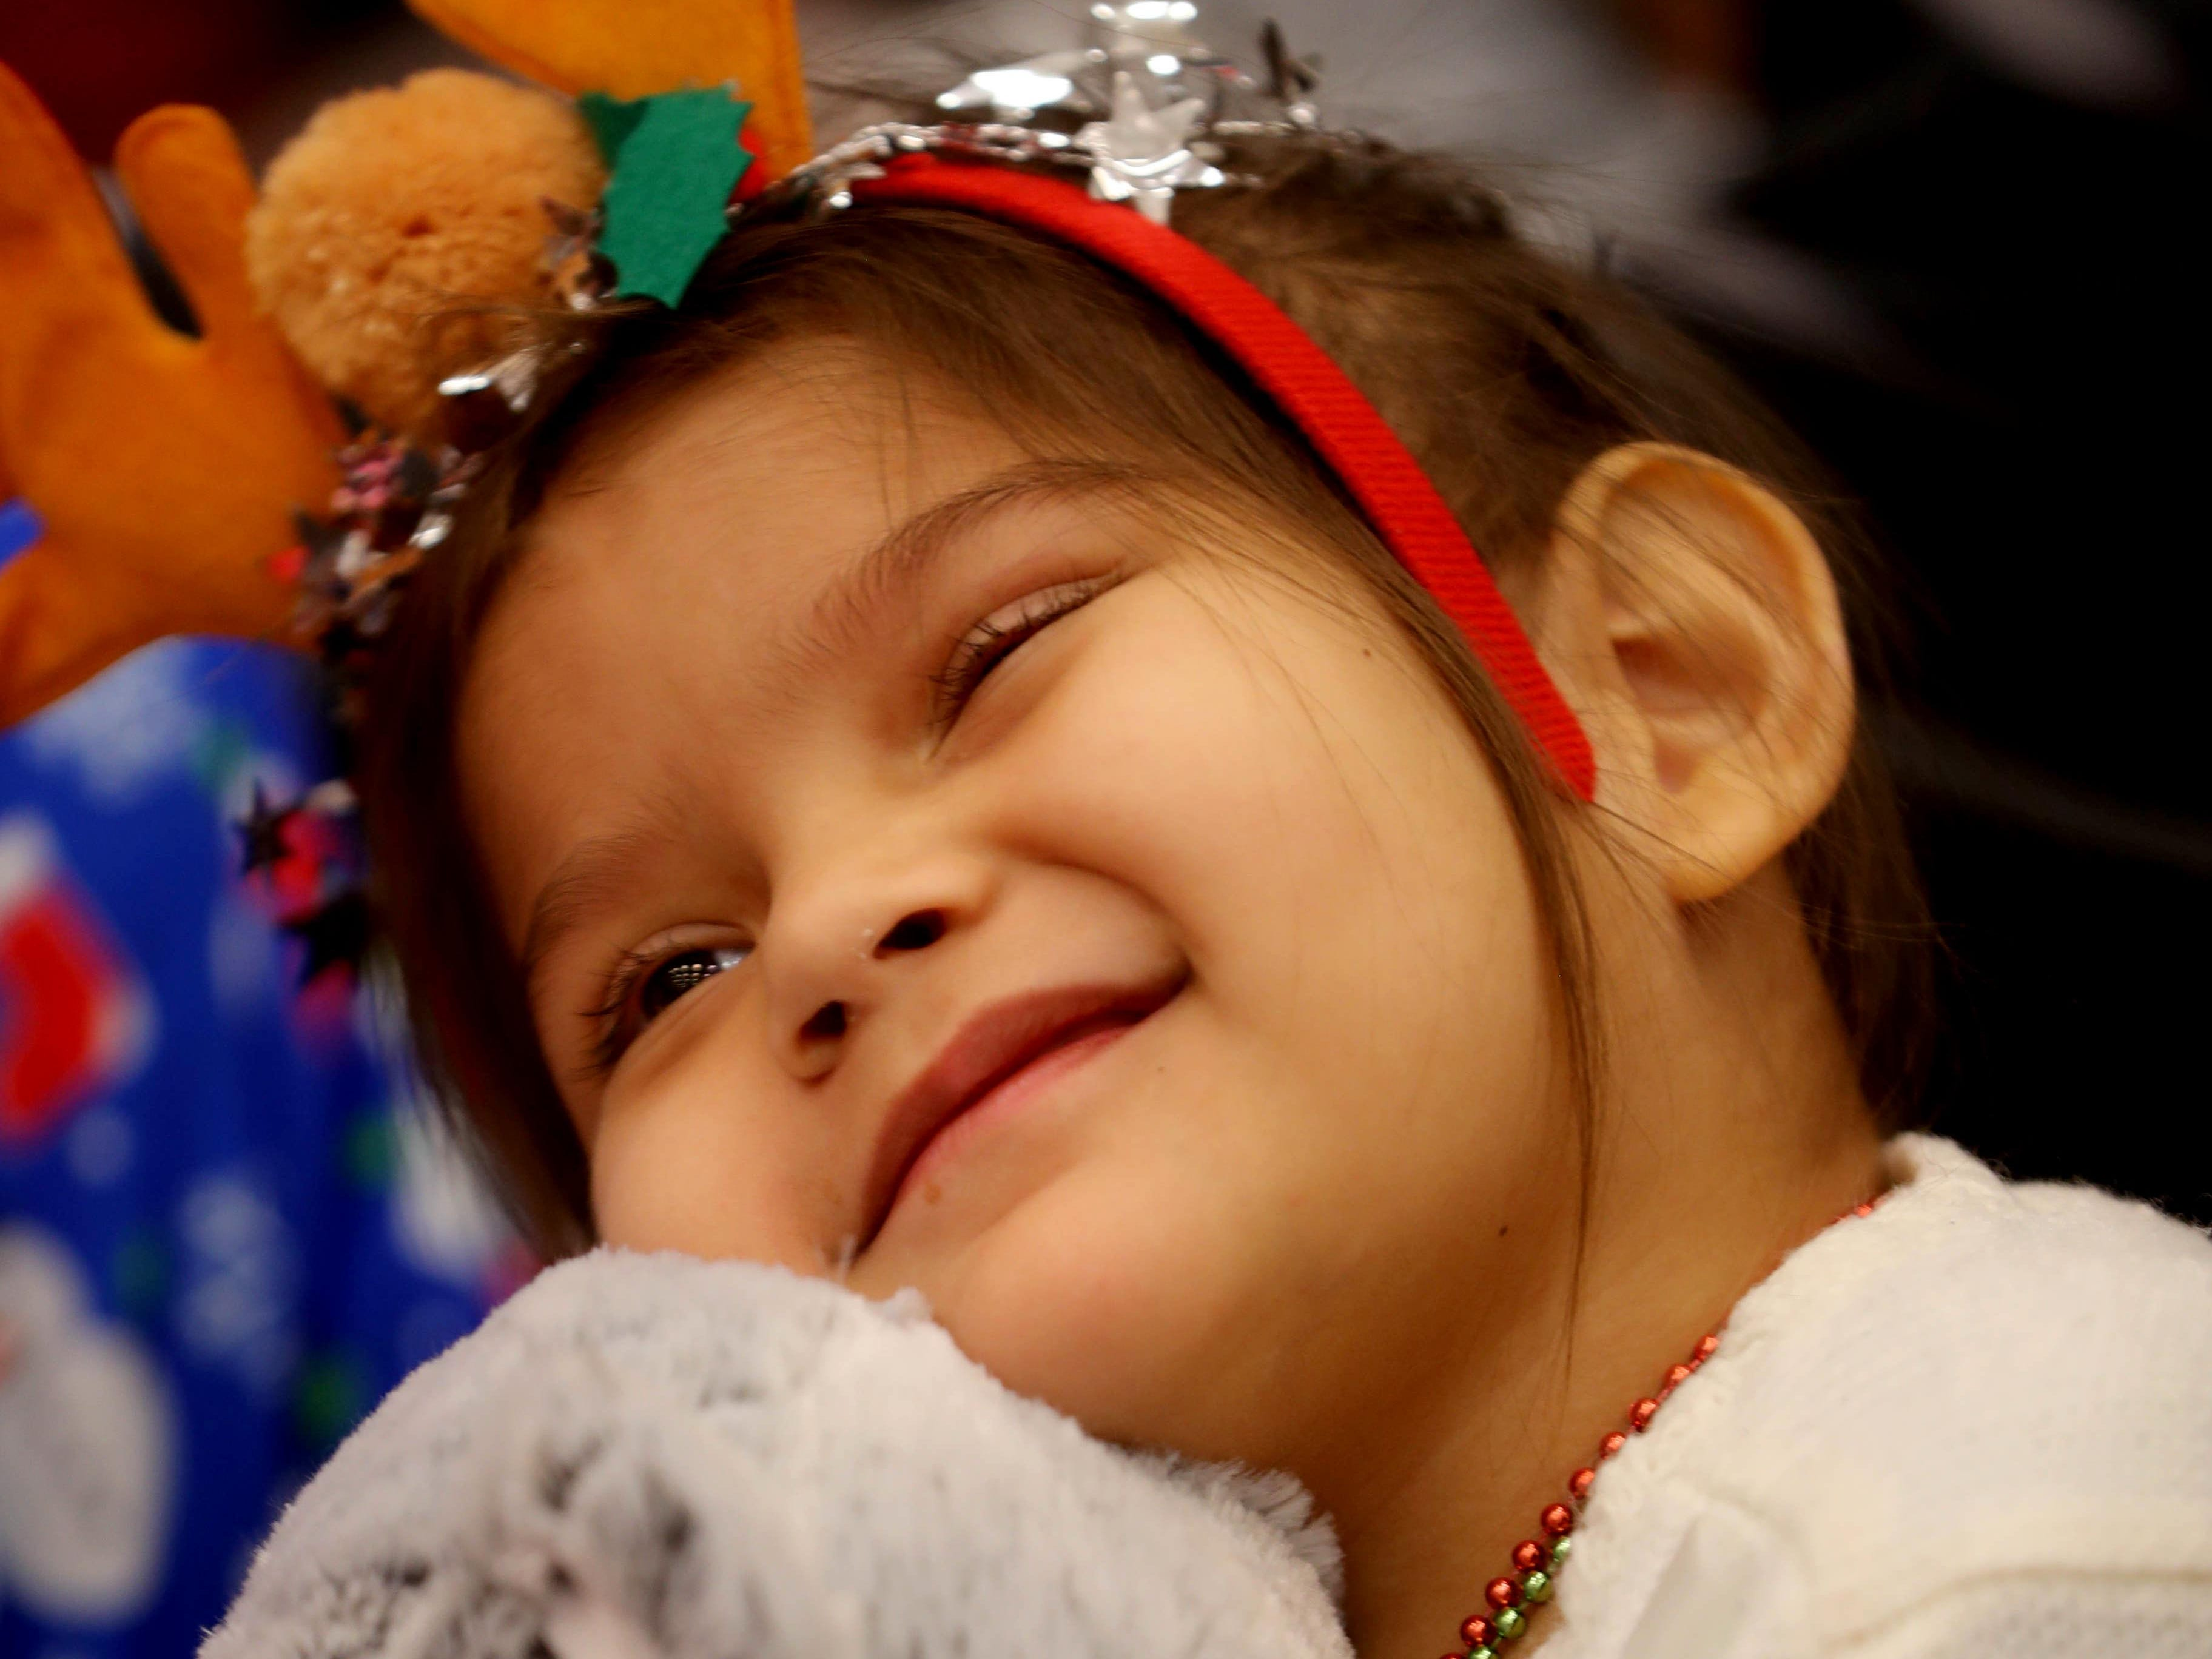 Daniela Hernandez, 5, a patient at Blythedale Children's Hospital in Valhalla, cuddles with a stuffed bear as she enjoys holiday music during the annual holiday show at the hospital Dec. 14, 2018. Scott Shannon, morning disc jockey with WCBS-FM hosts the show every year. This year's show included performances by Rob Thomas of Matchbox Twenty, Mark Rivera, who is Billy Joel's longtime saxophonist, and Grammy nominated singer and songwriter Gavin DeGraw. The event included a live auction that featured autographed guitars by Jon Bon Jovi and Rob Thomas and tickets to a Billy Joel concert at Madison Square Garden.